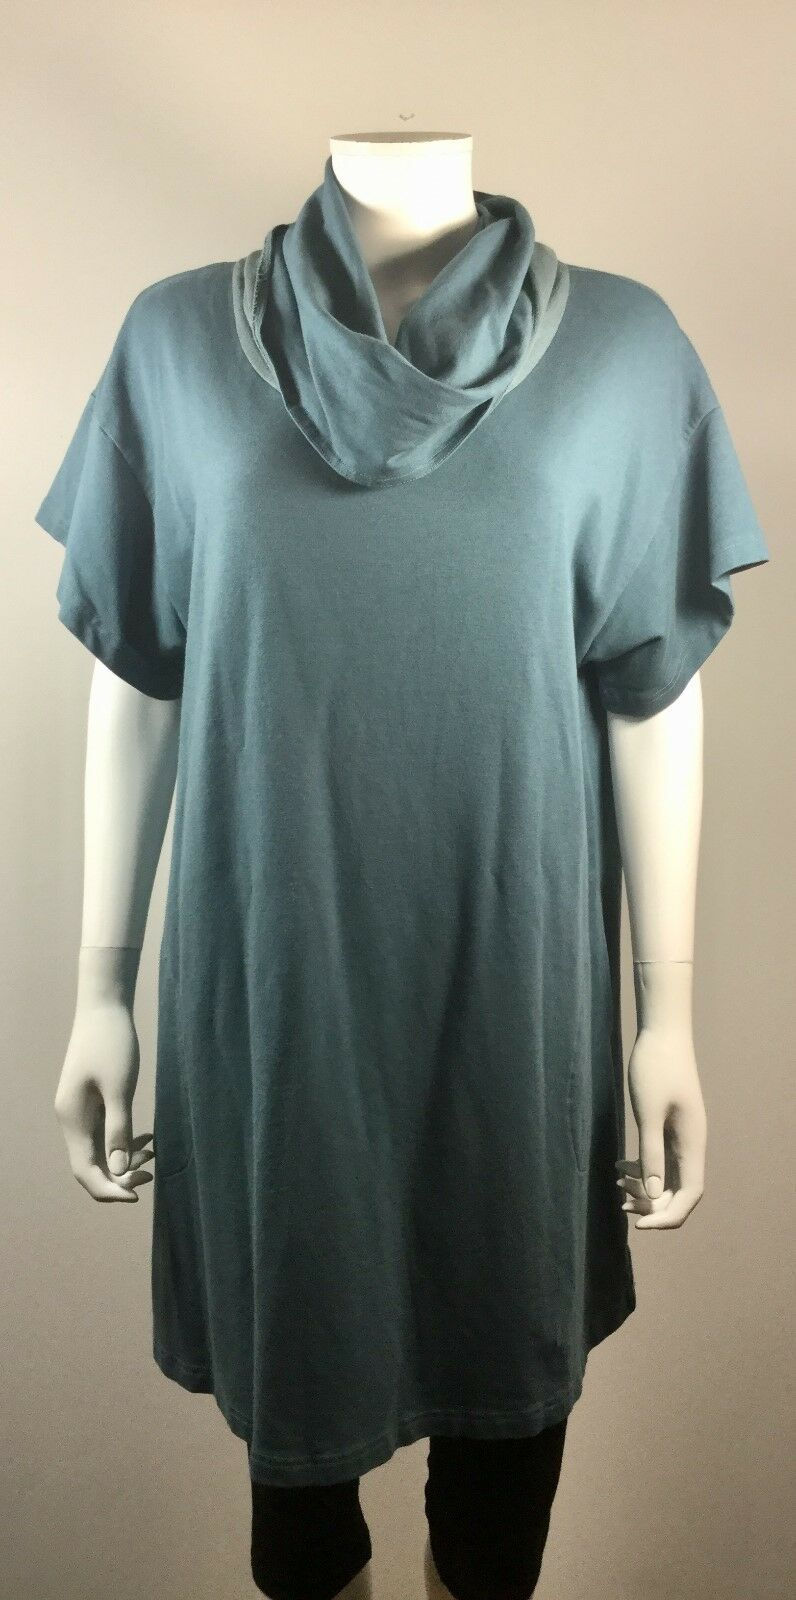 BRYN WALKER Blau Cowl Neck Short Sleeve Tunic Dress Größe Medium